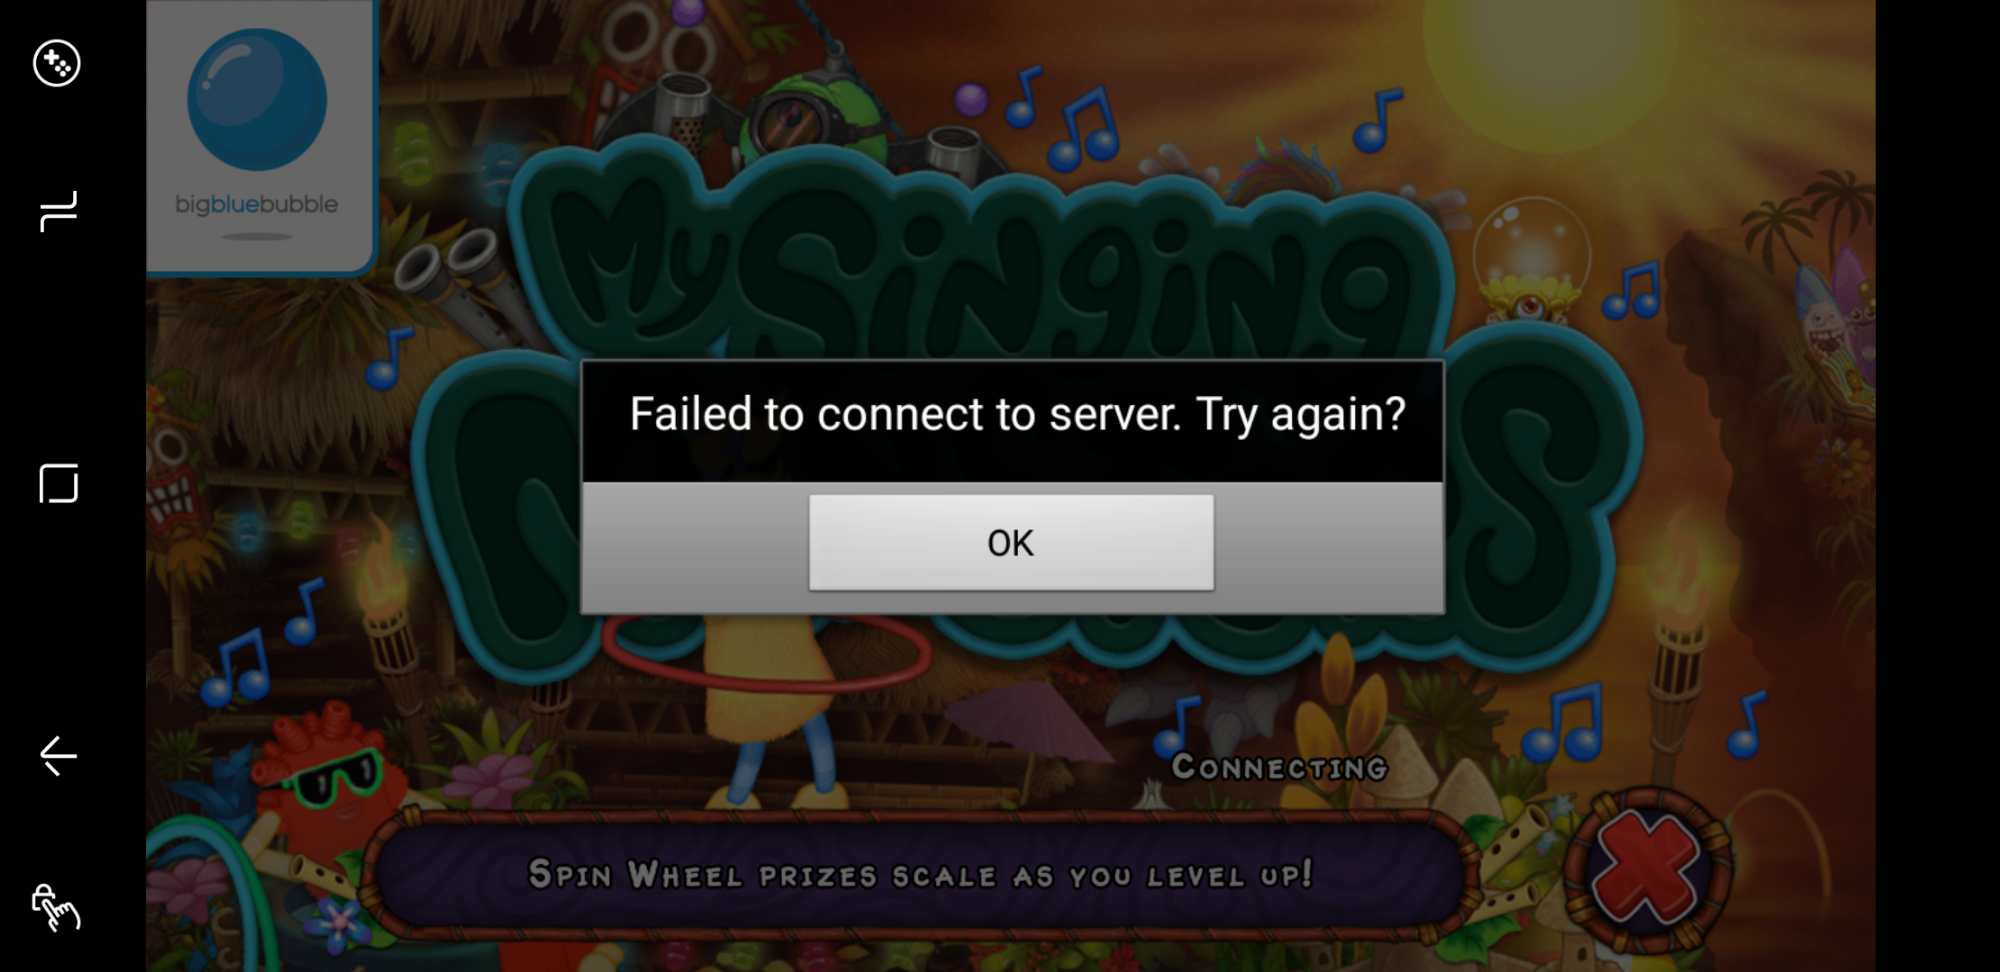 Guys do you Know why I cant log in